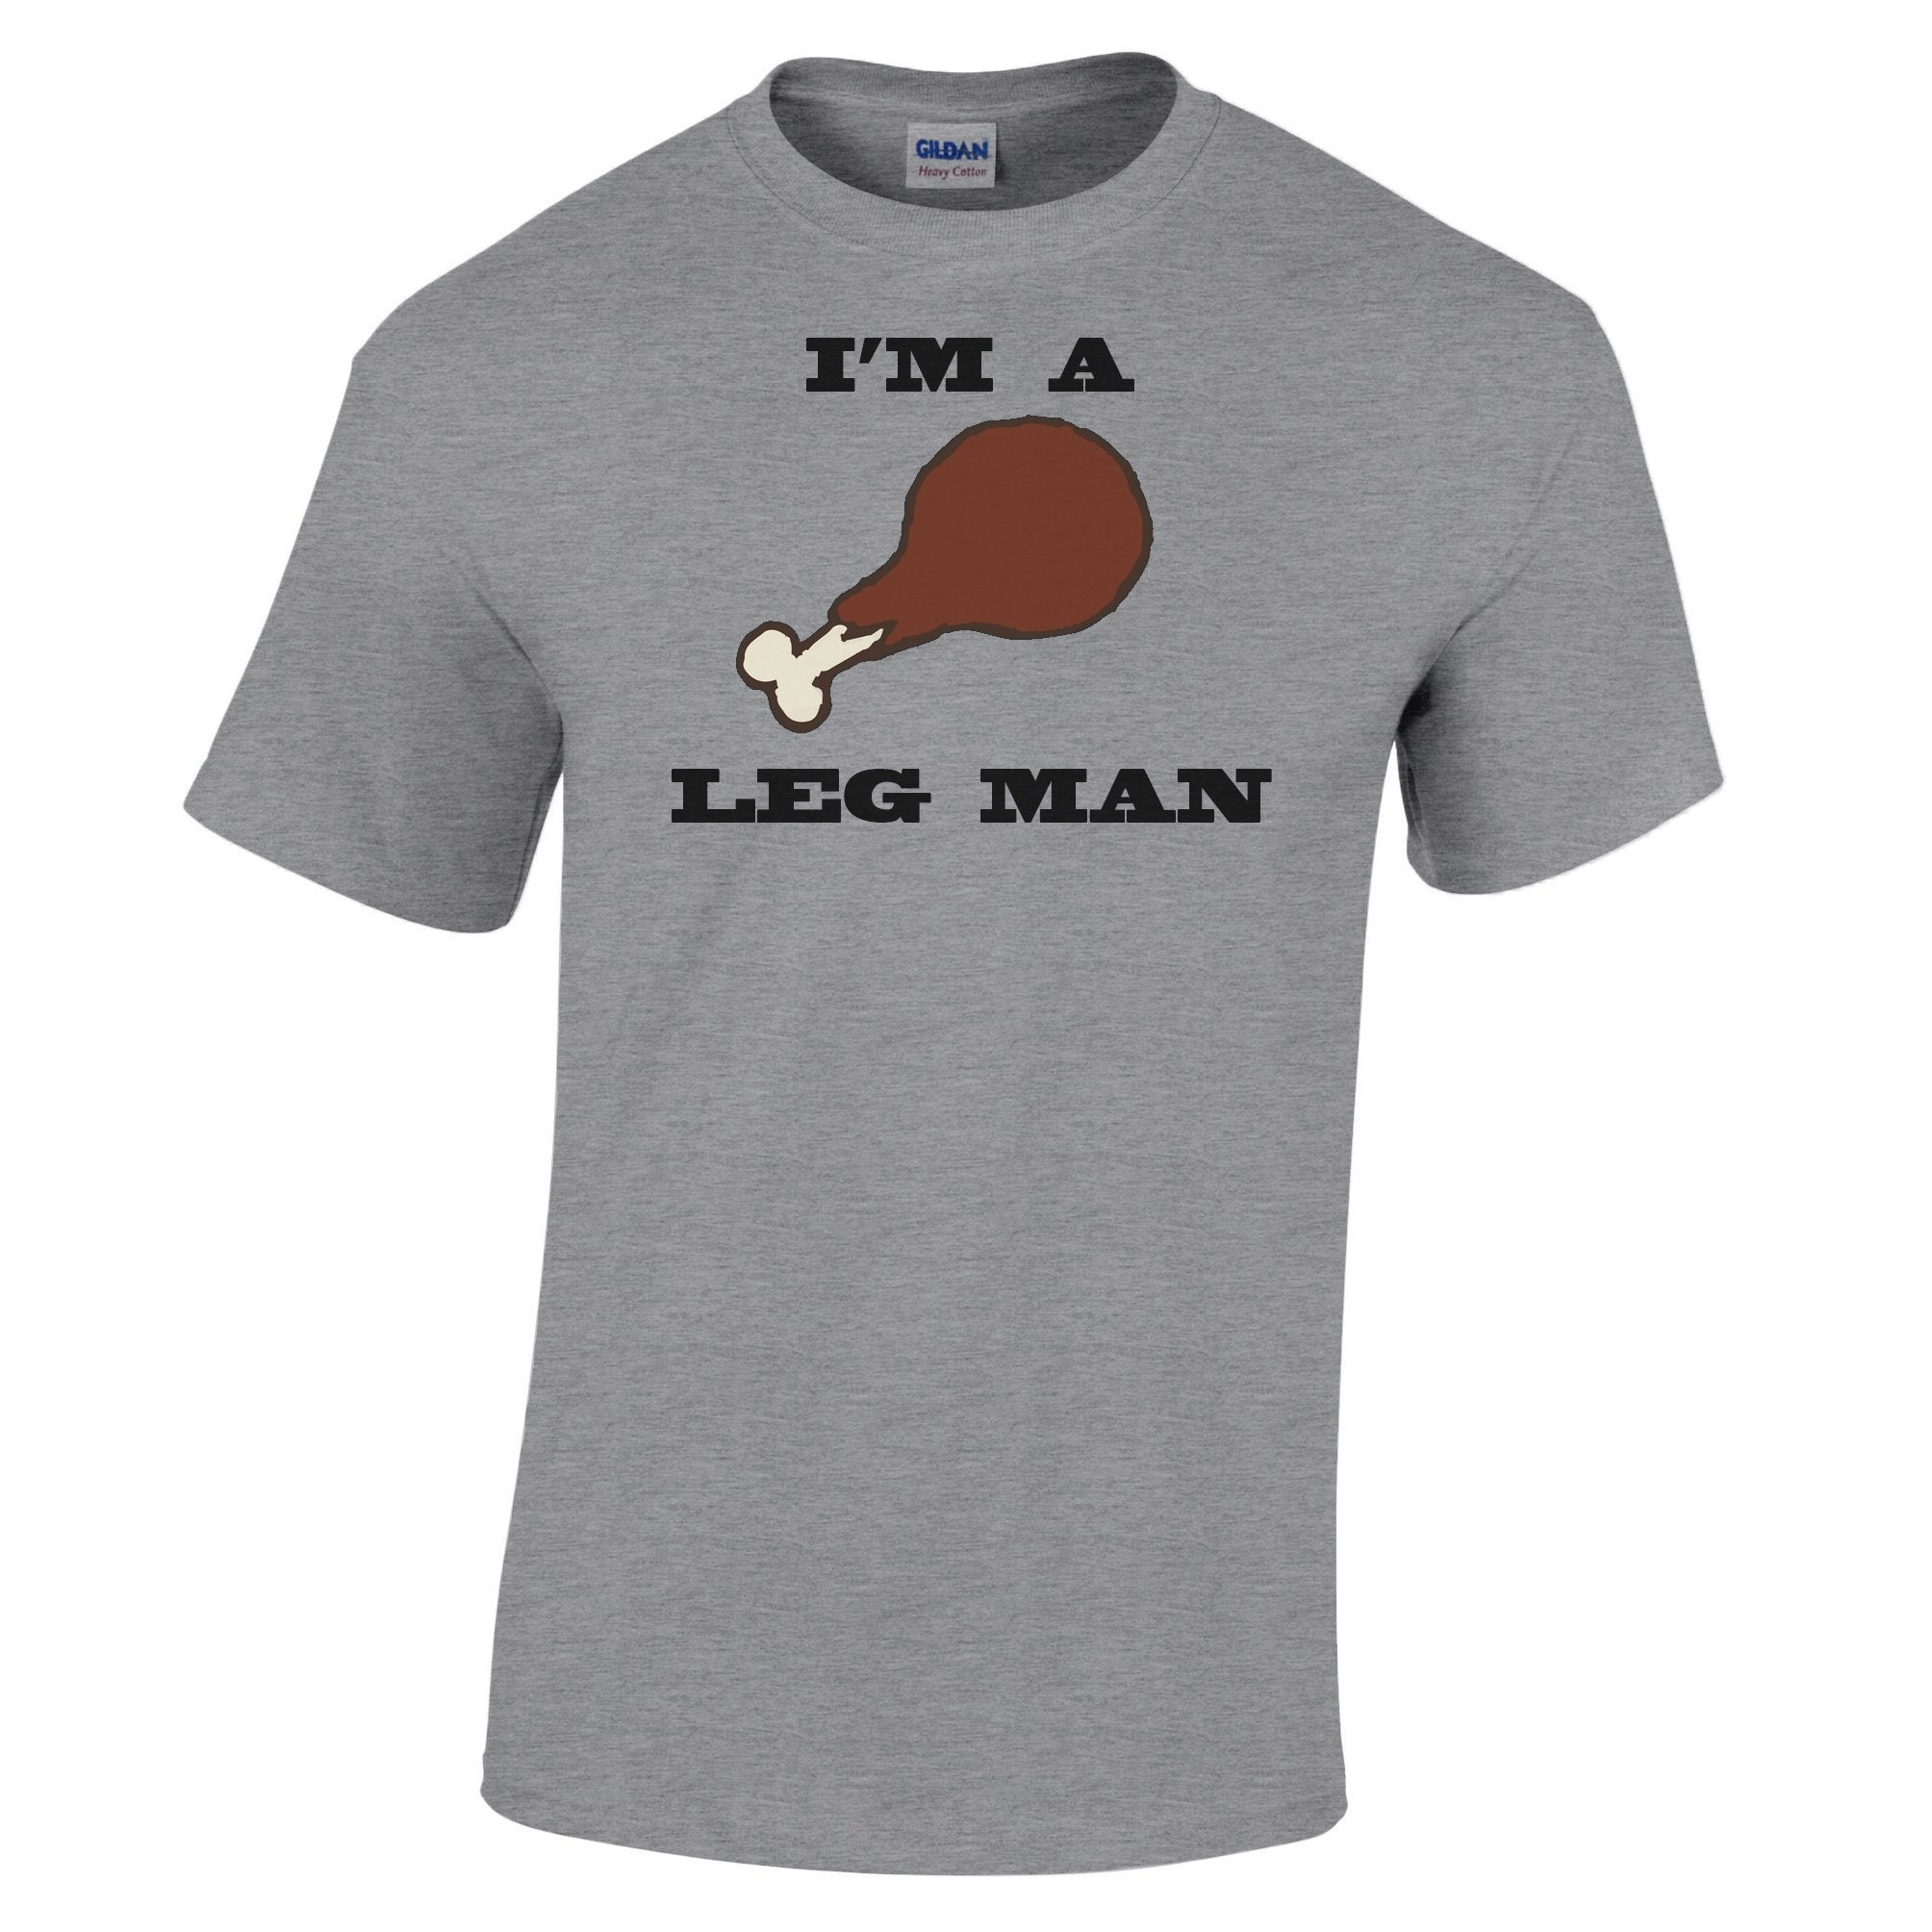 Thanksgiving T Shirt I'm A Leg Man Drumstick Slogan